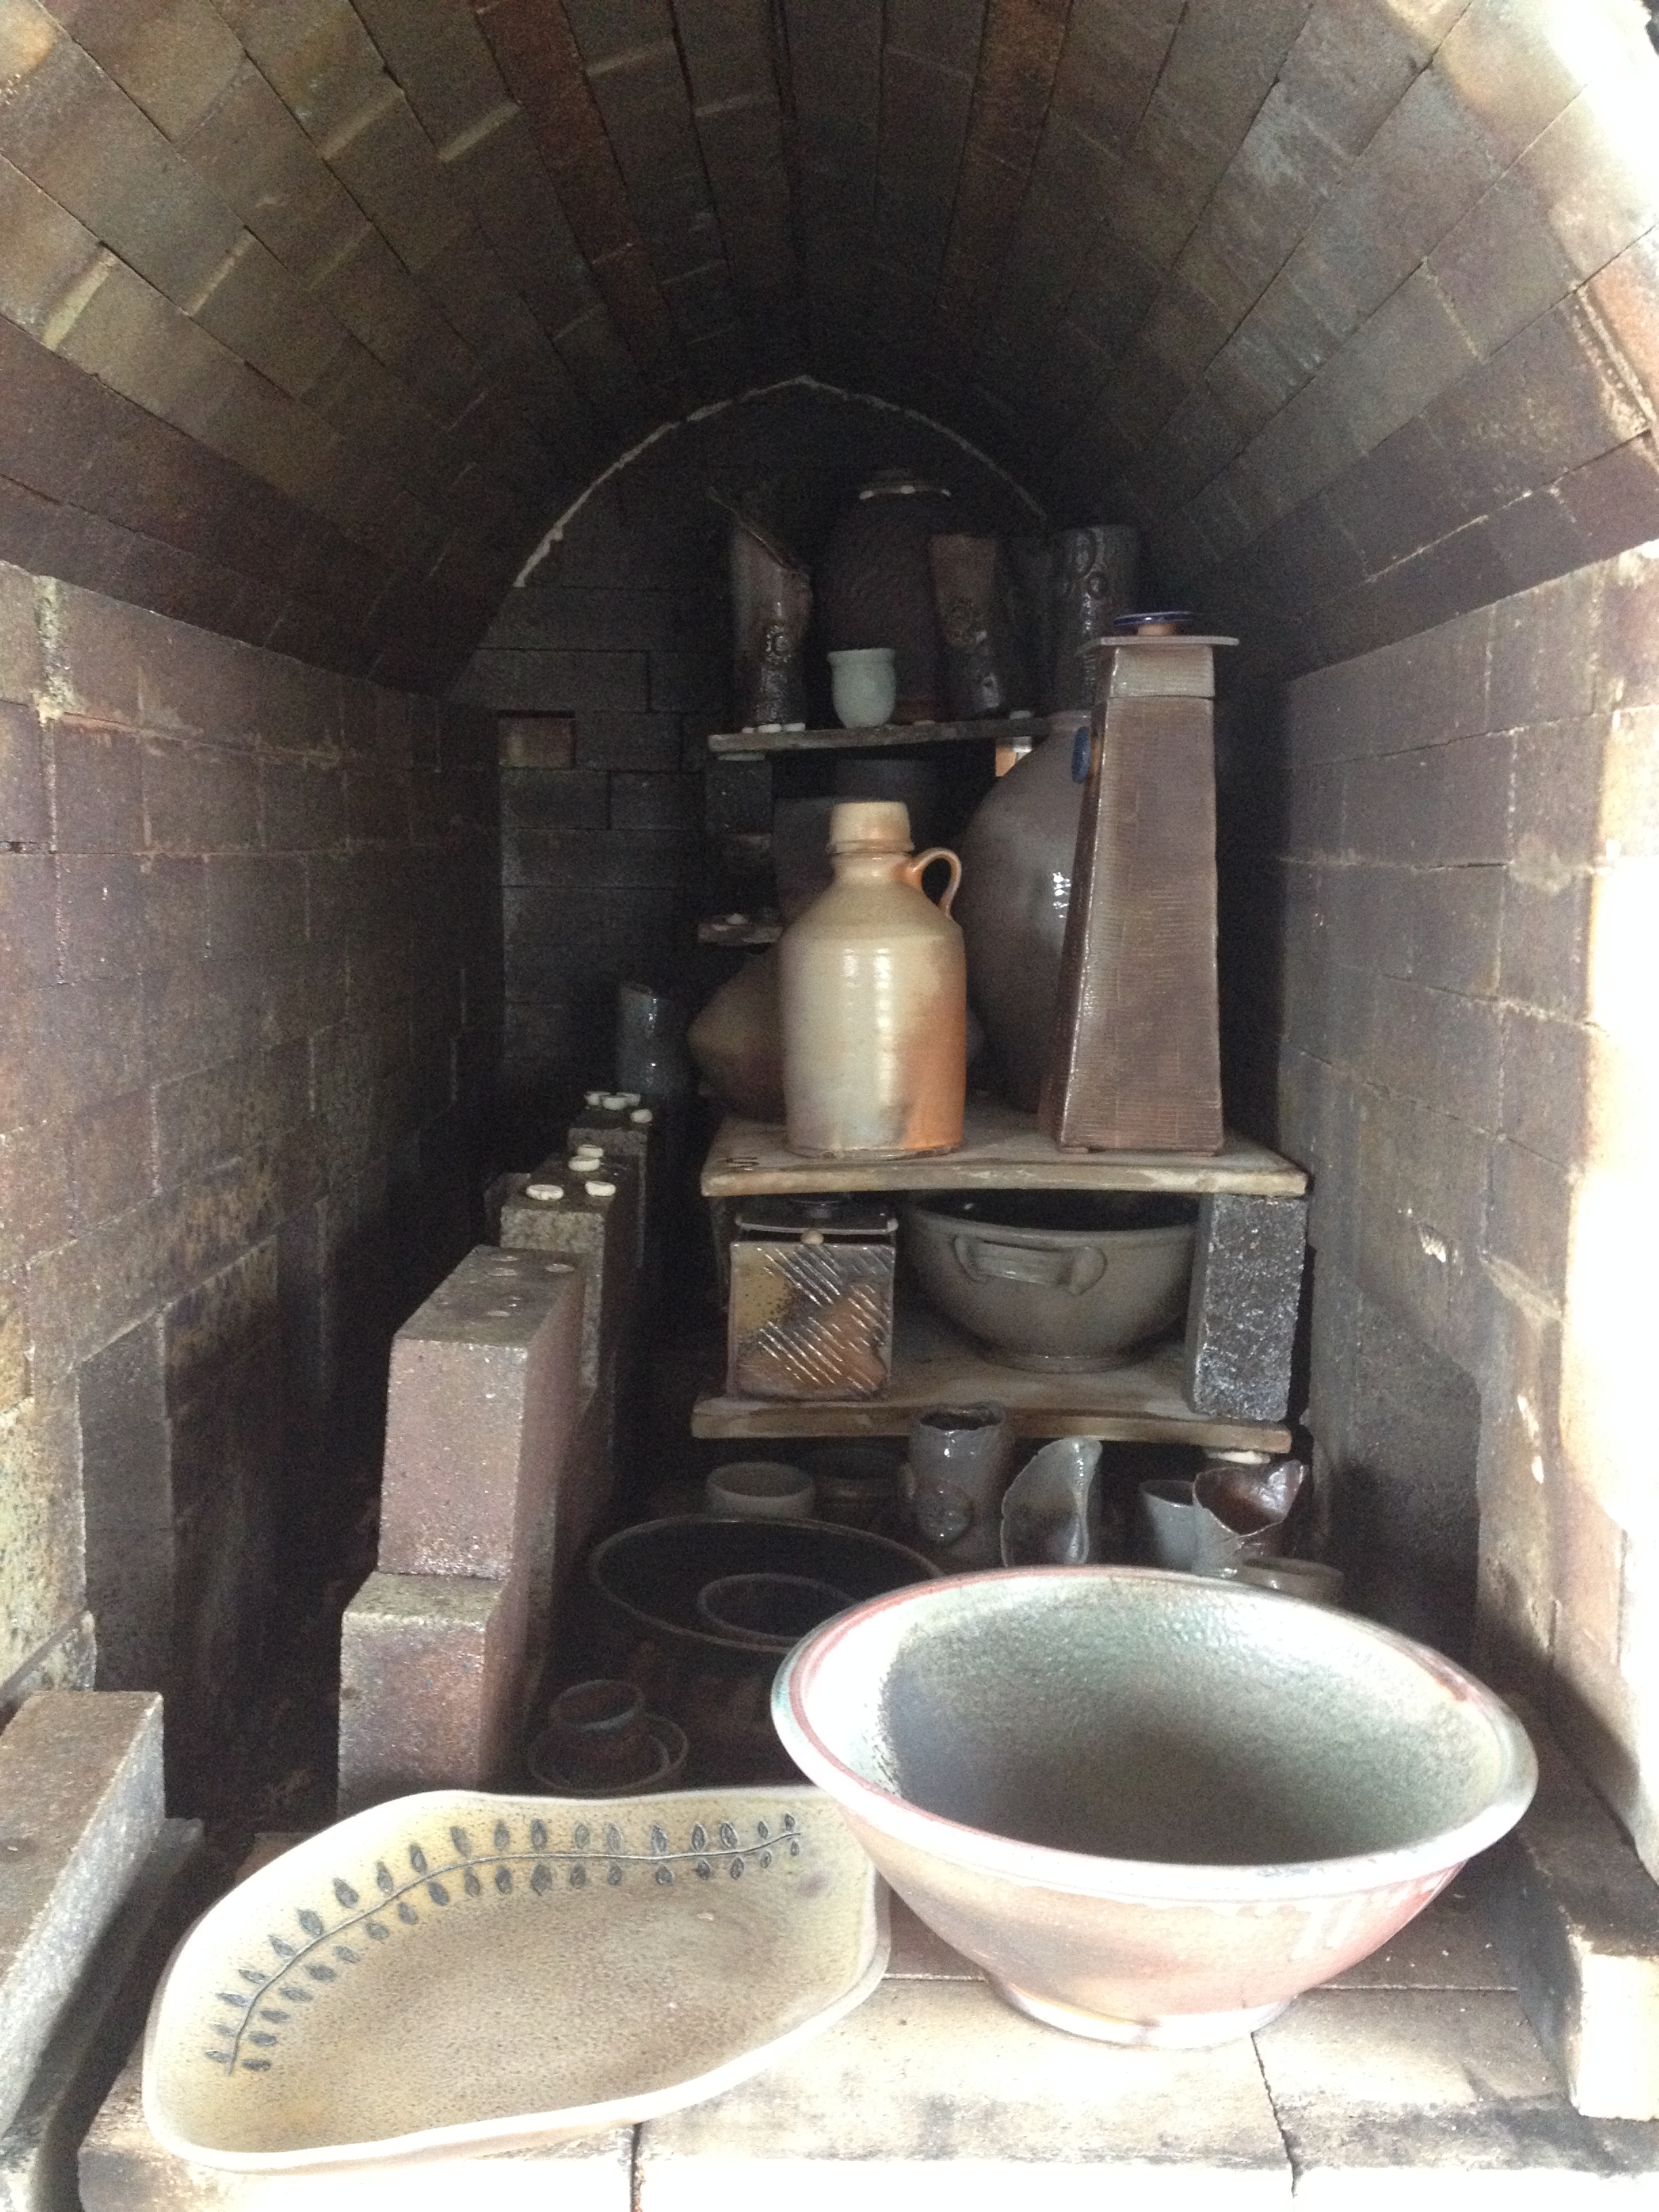 One side of the kiln before they began unloading over 600 new pots and other pieces!